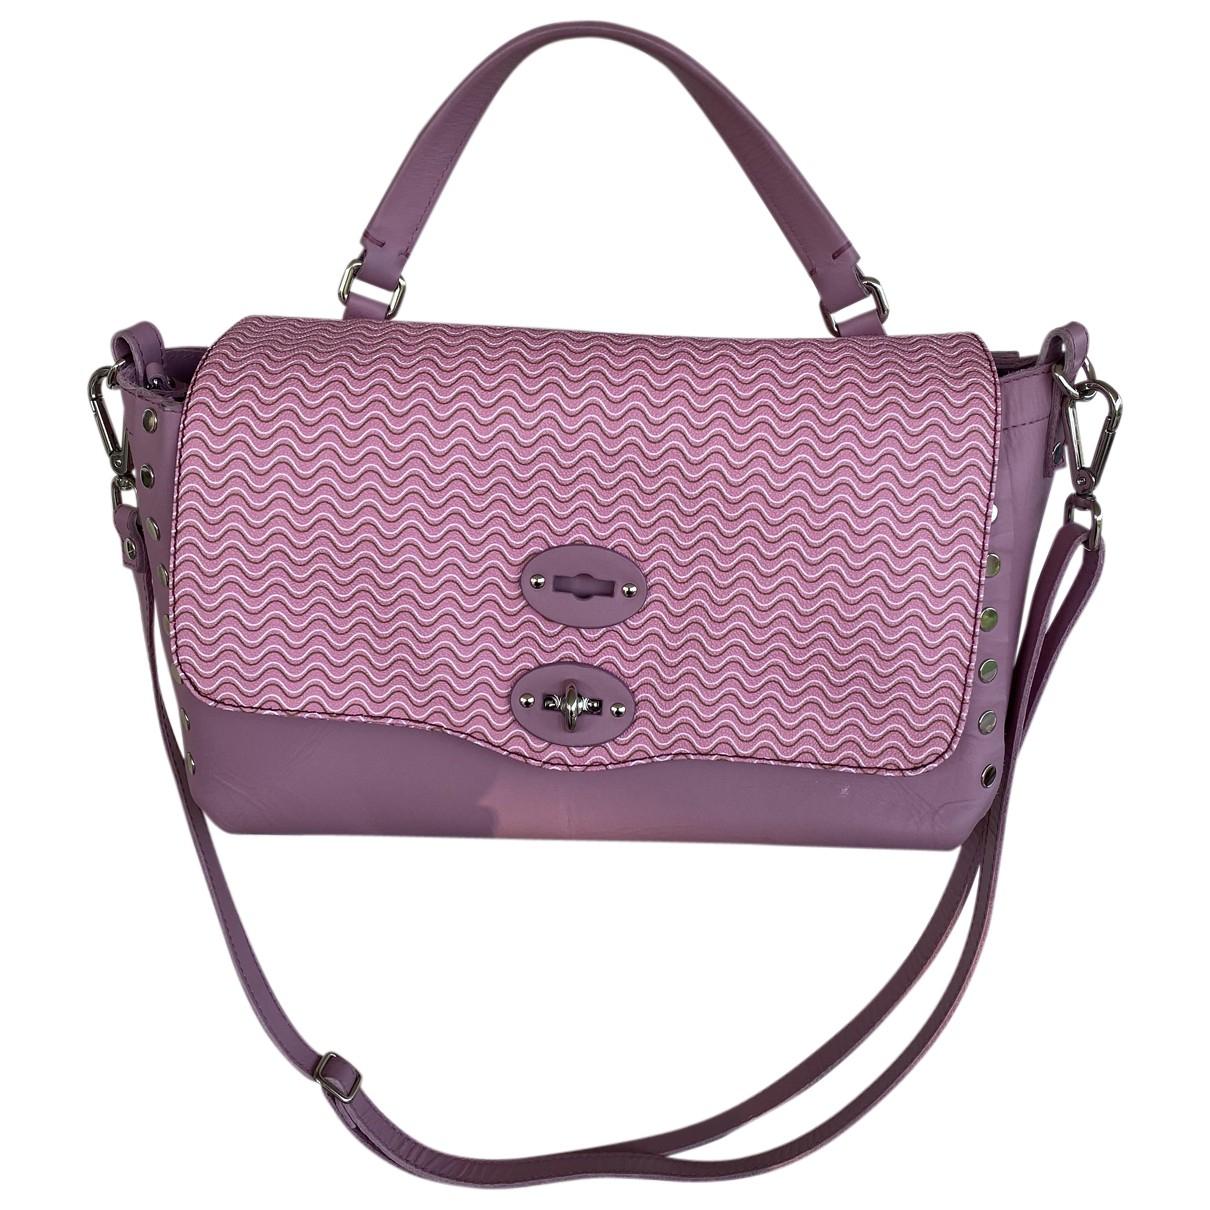 Zanellato N Pink Leather handbag for Women N